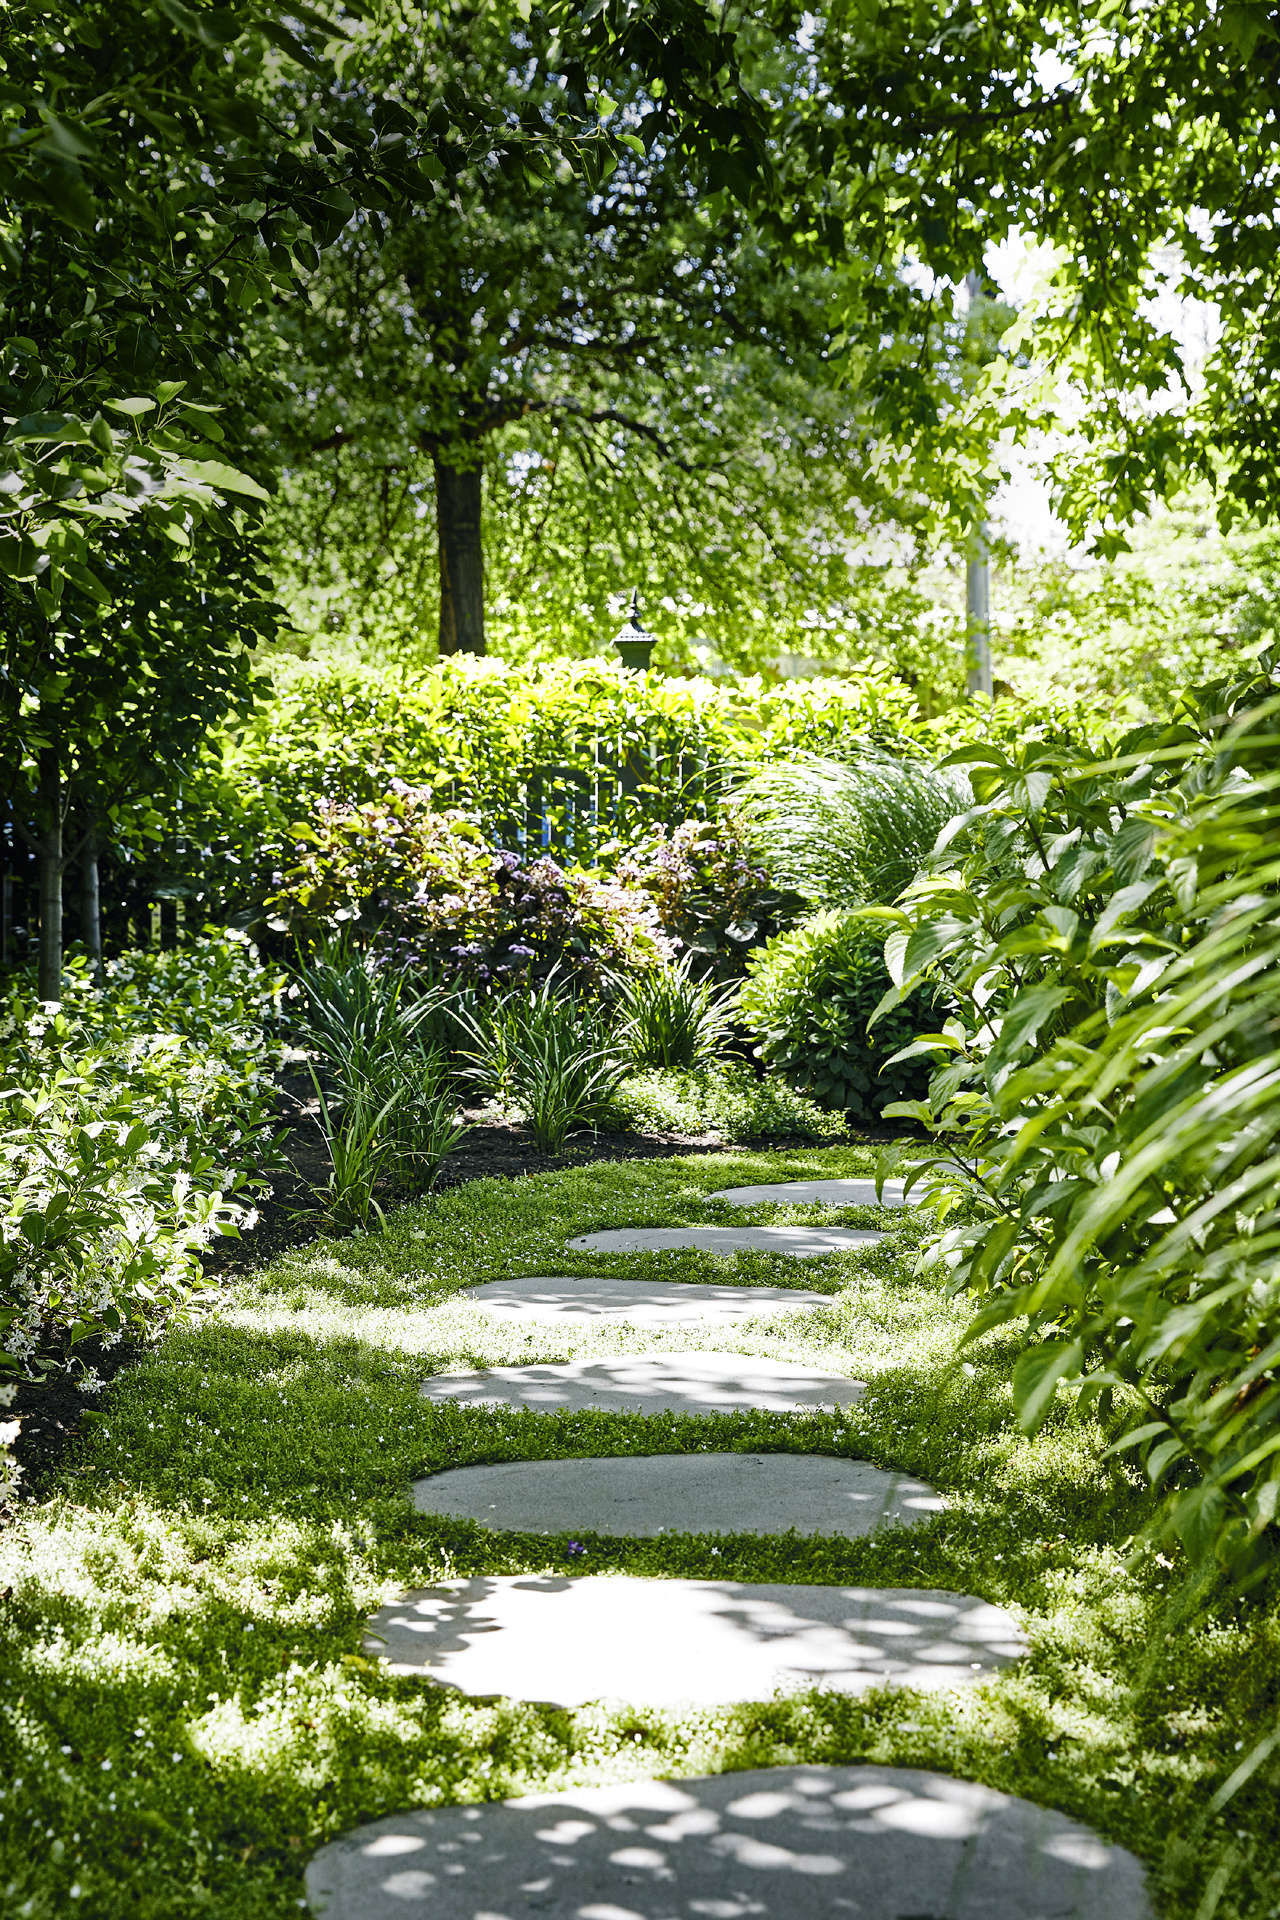 Mixed in with old-fashioned flowering plants, spiky grasses including Lomandra and Miscanthus add a modern element.